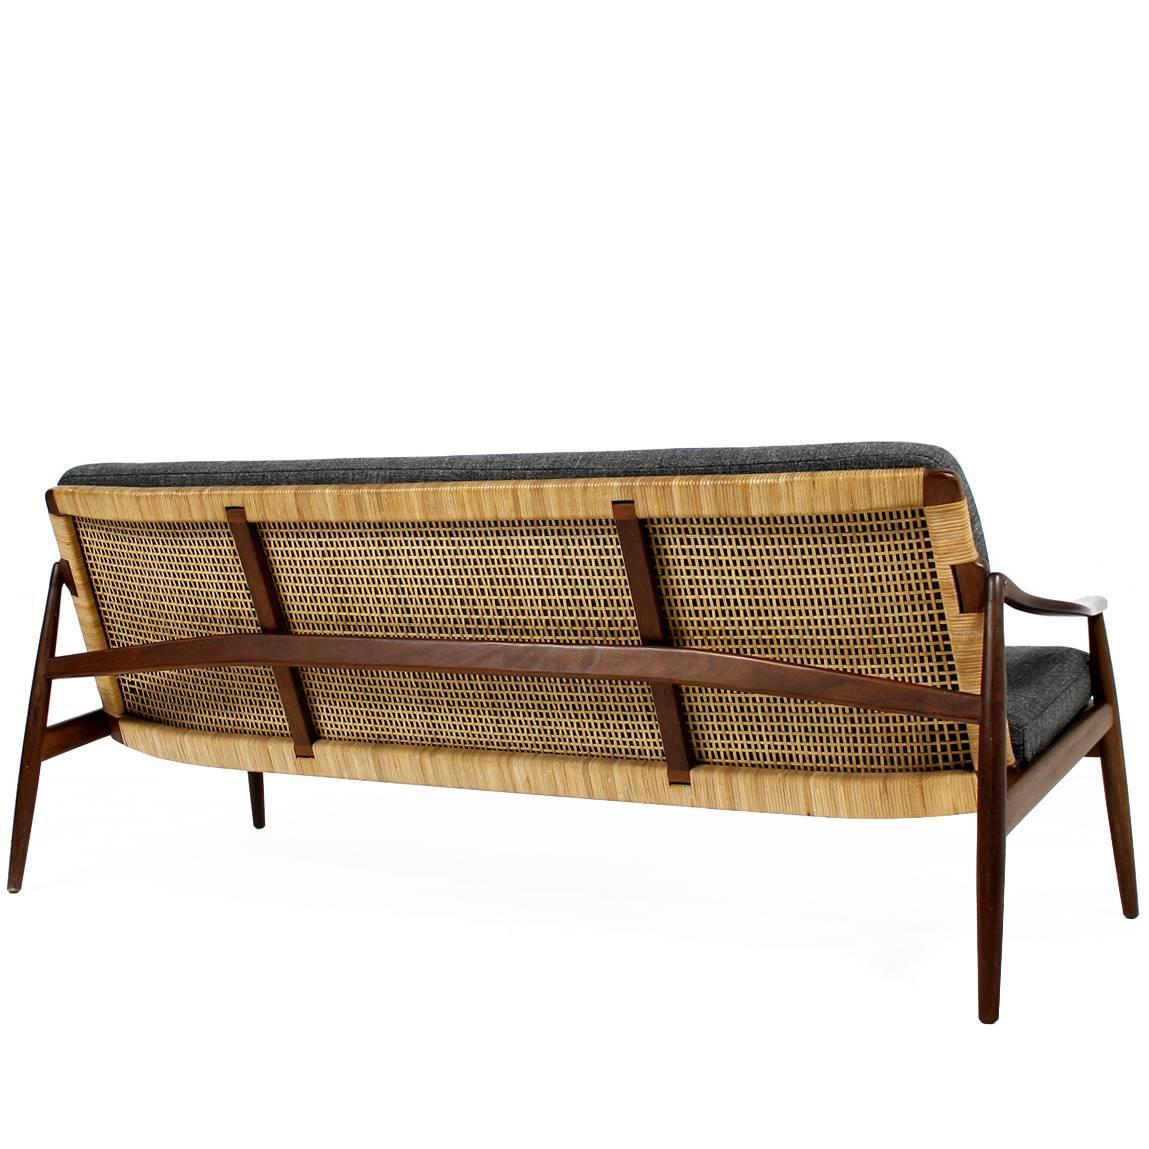 1950s Sofa Rare 1950s Sofa Daybed By Walter Knoll For